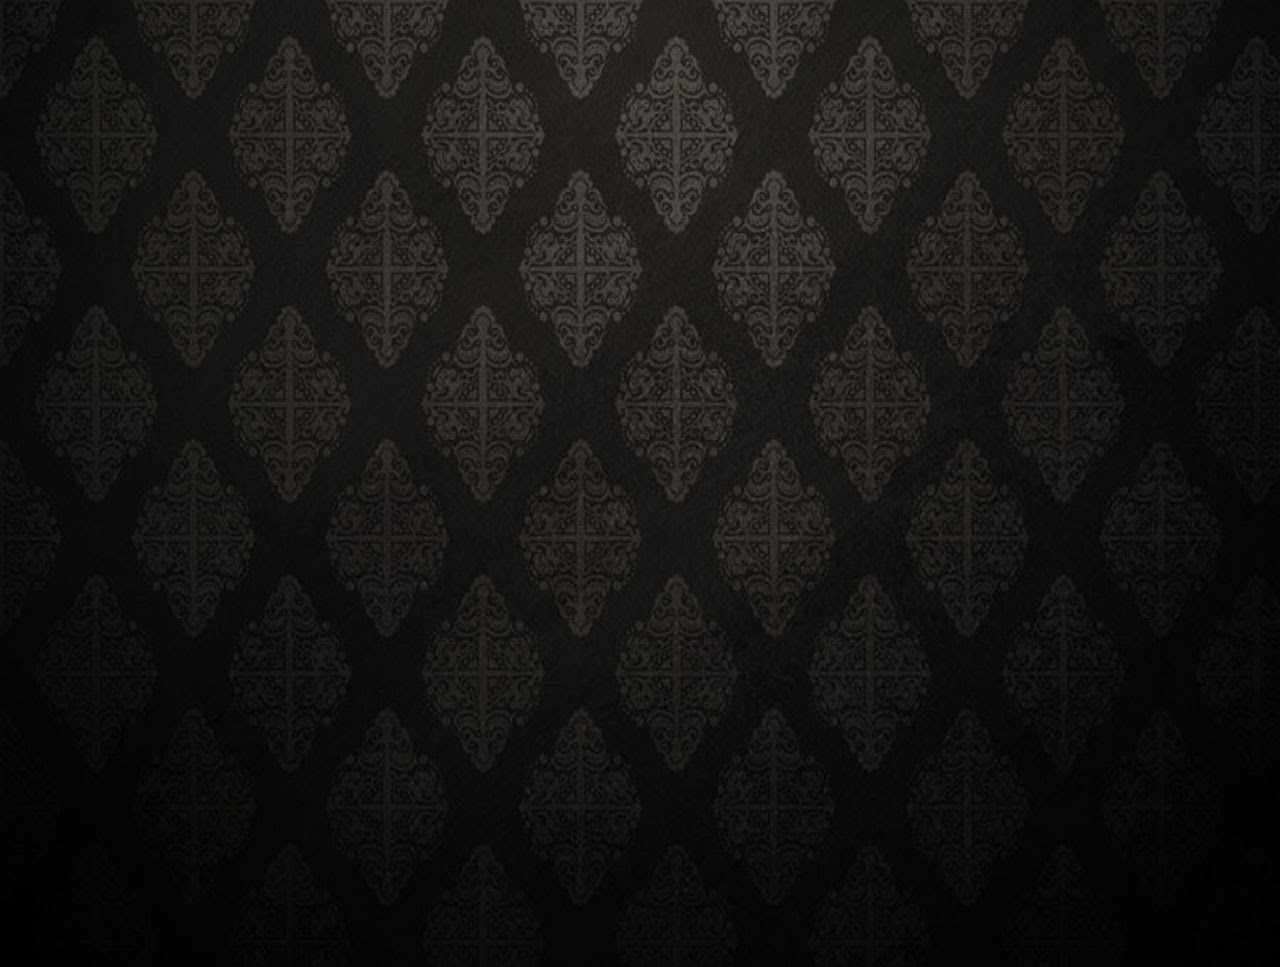 black damask wallpaper on - photo #26